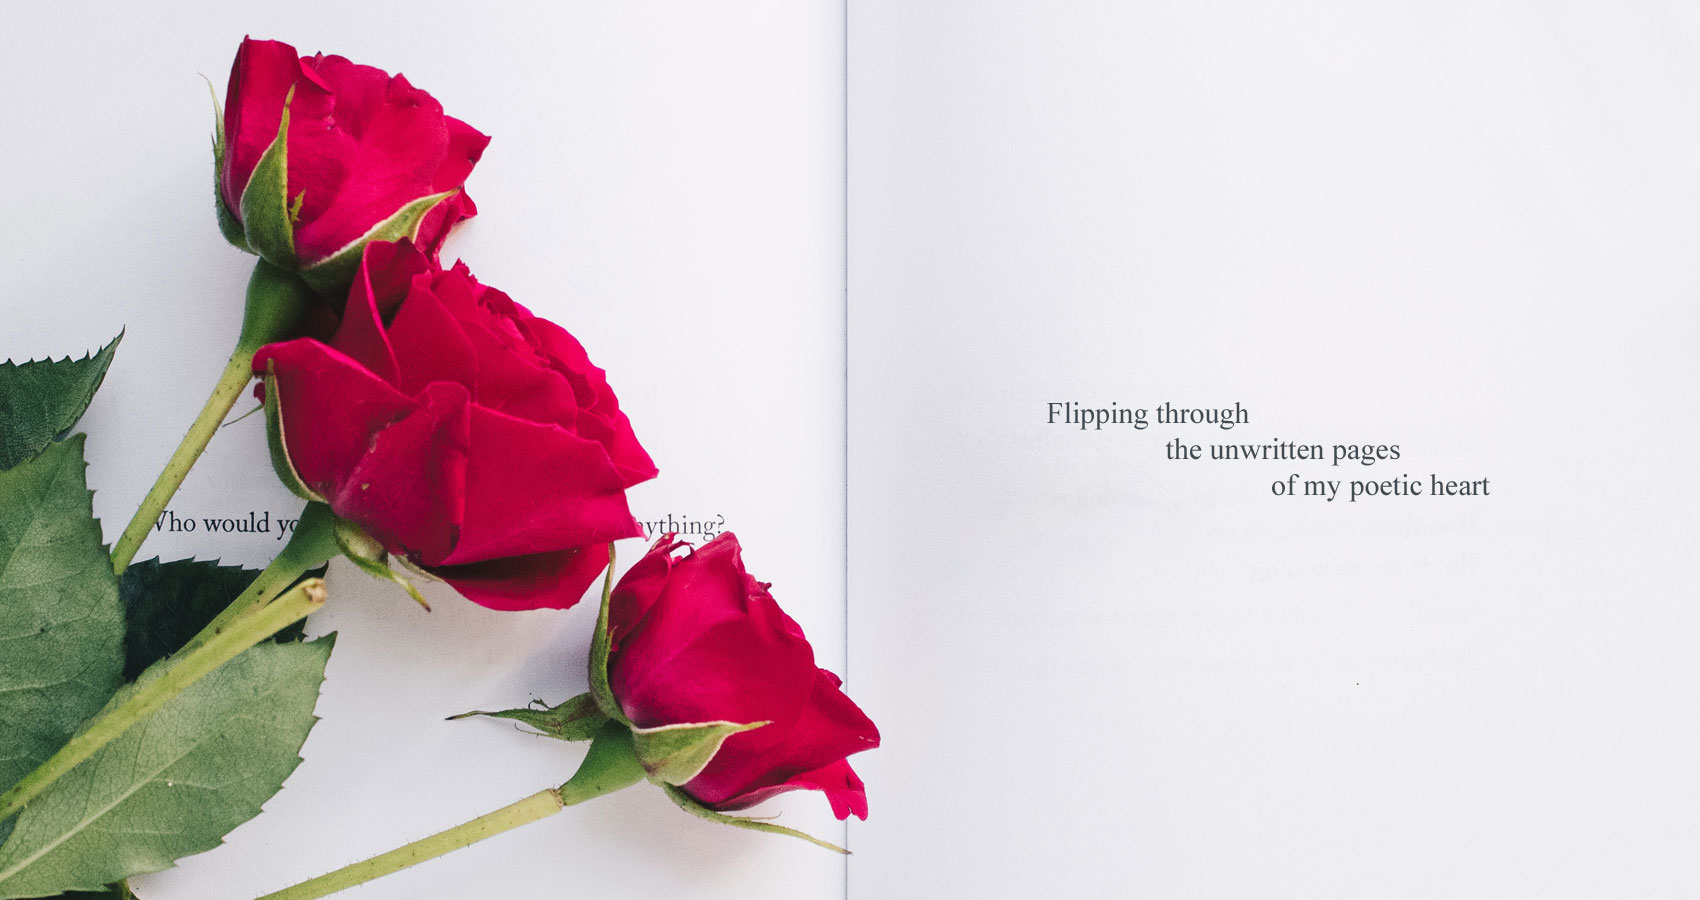 Blush, a poem written by Priya Dolma Tamang at Spillwords.com